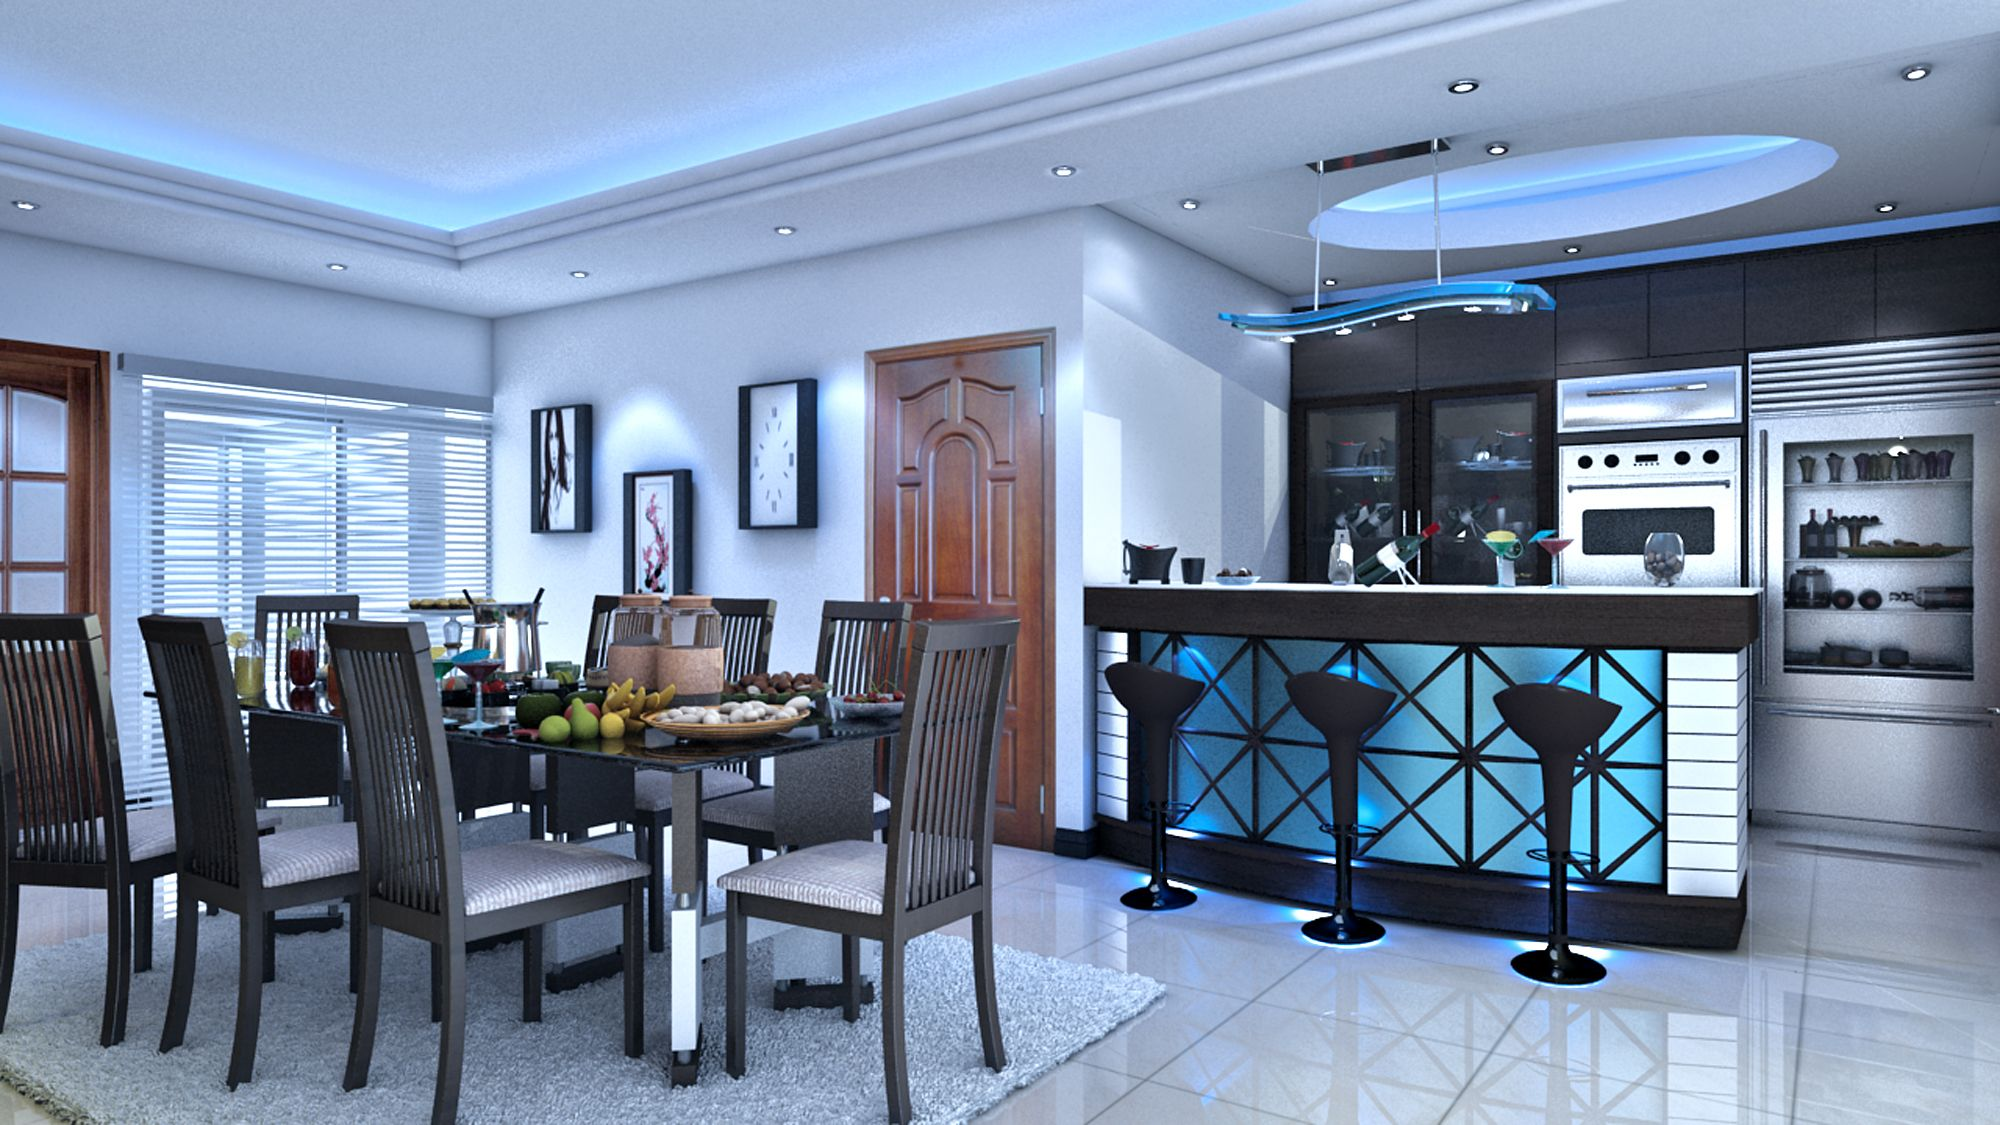 Best interior design company in bangladesh for Home interior decoration company